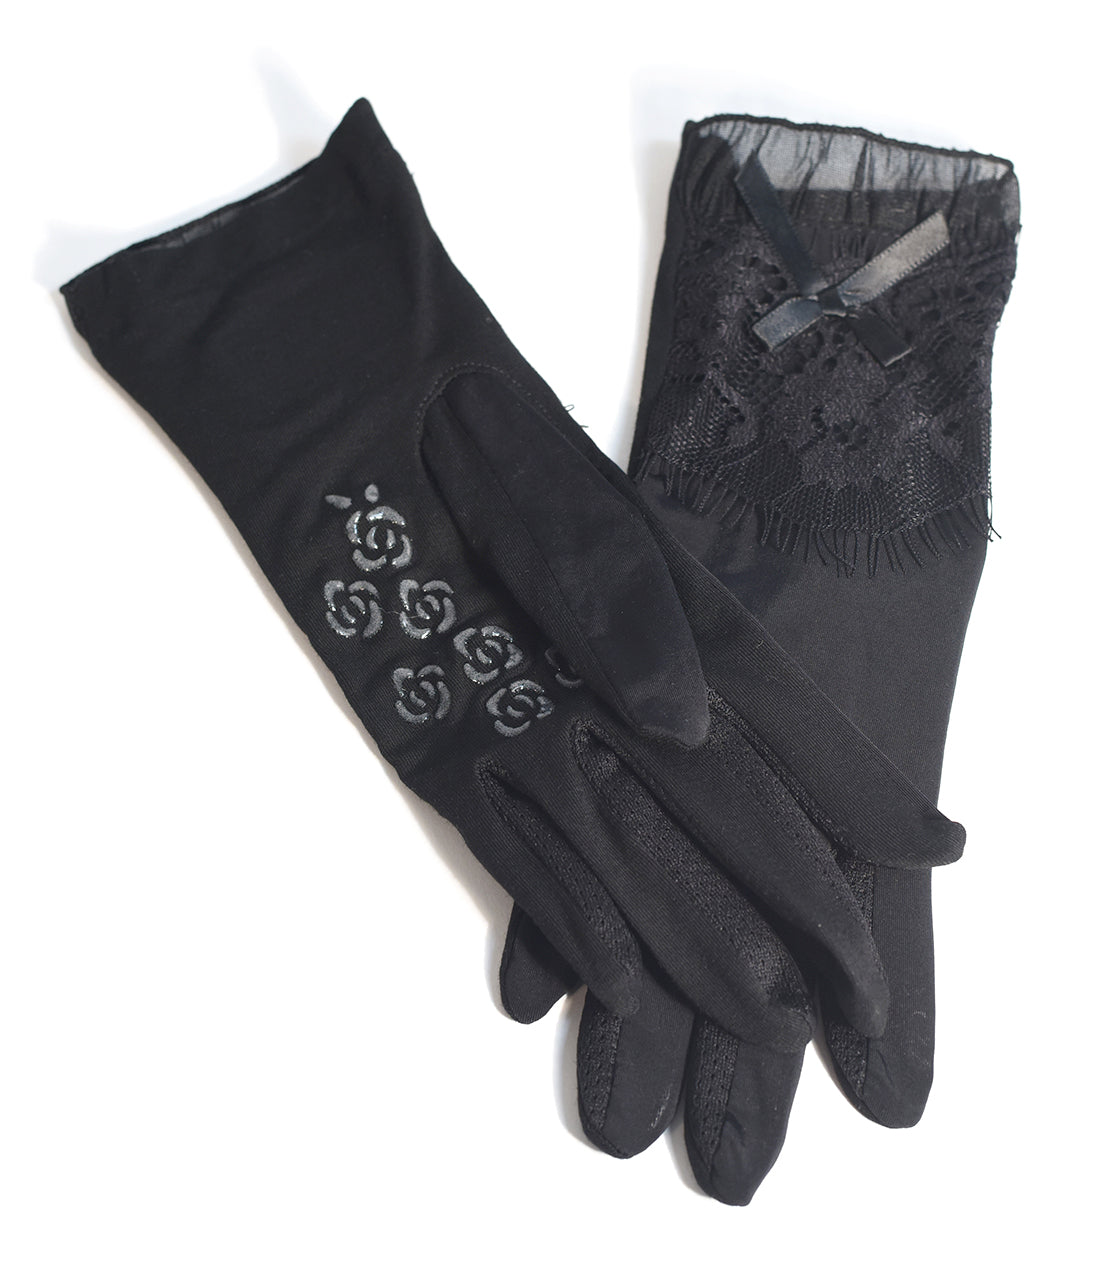 Vintage Style Gloves- Long, Wrist, Evening, Day, Leather, Lace Black Vintage Lace Sheer Wrist Gloves $18.00 AT vintagedancer.com